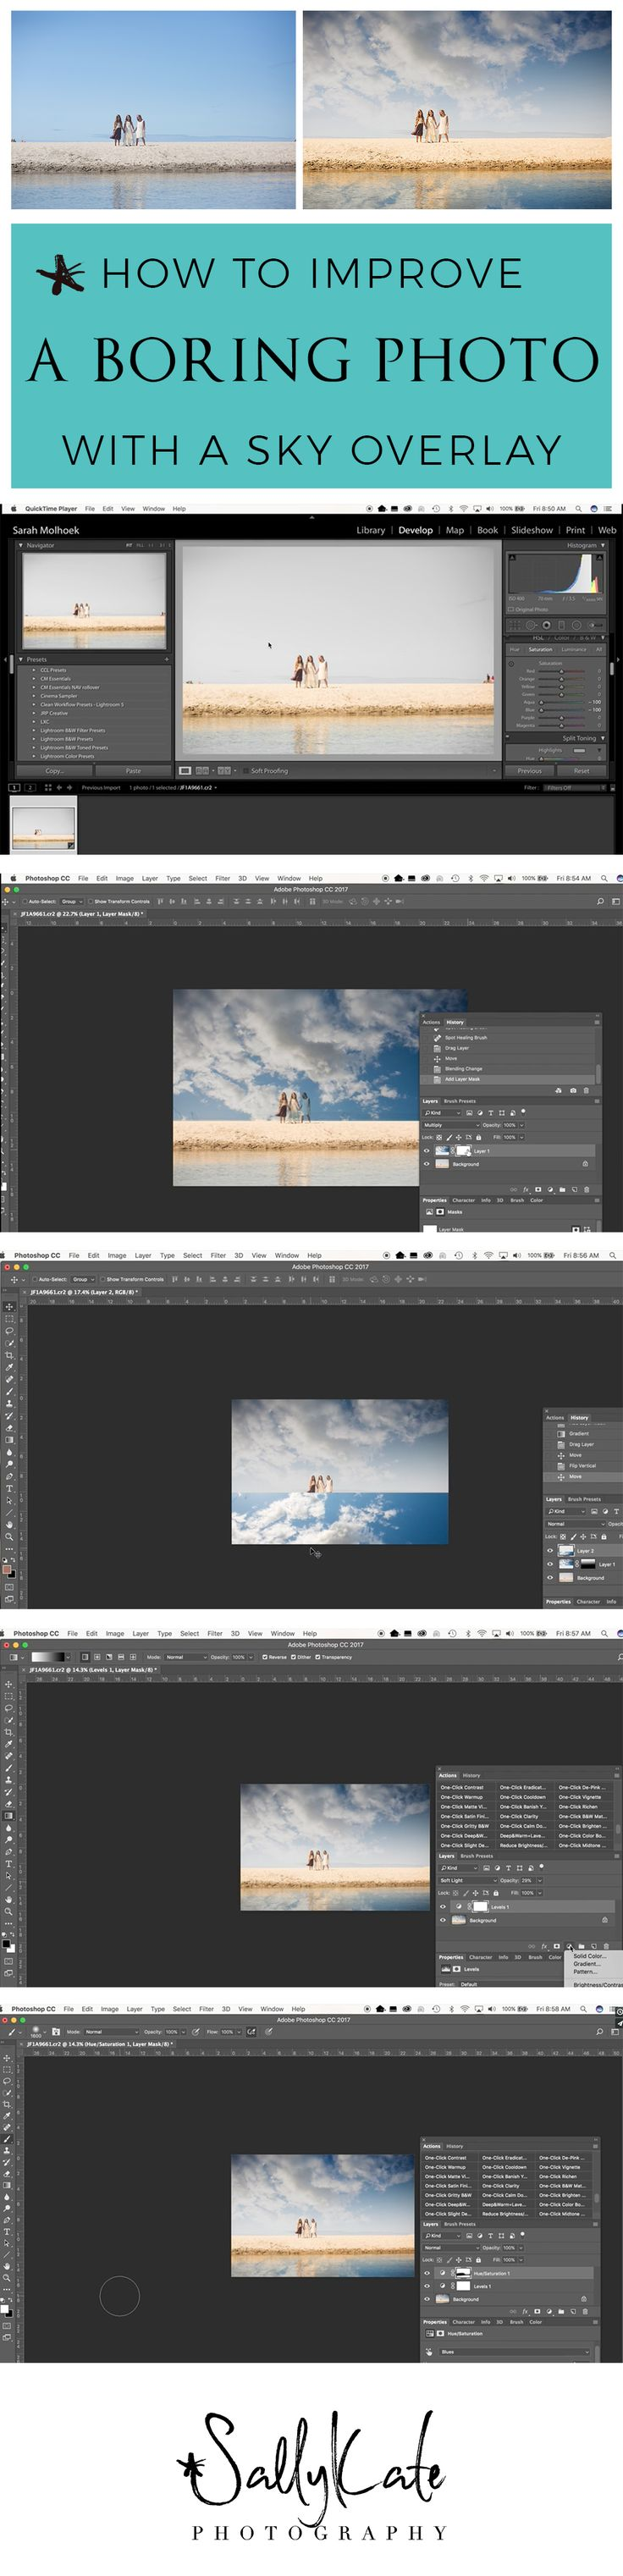 How to Improve a Boring Photo with a Sky Overlay in Photoshop   Photoshop Tutorials   Tips and Tricks for Photoshop   Photoshop for Beginners   Portrait Editing Tips for Photoshop   www.sallykatephotography.com